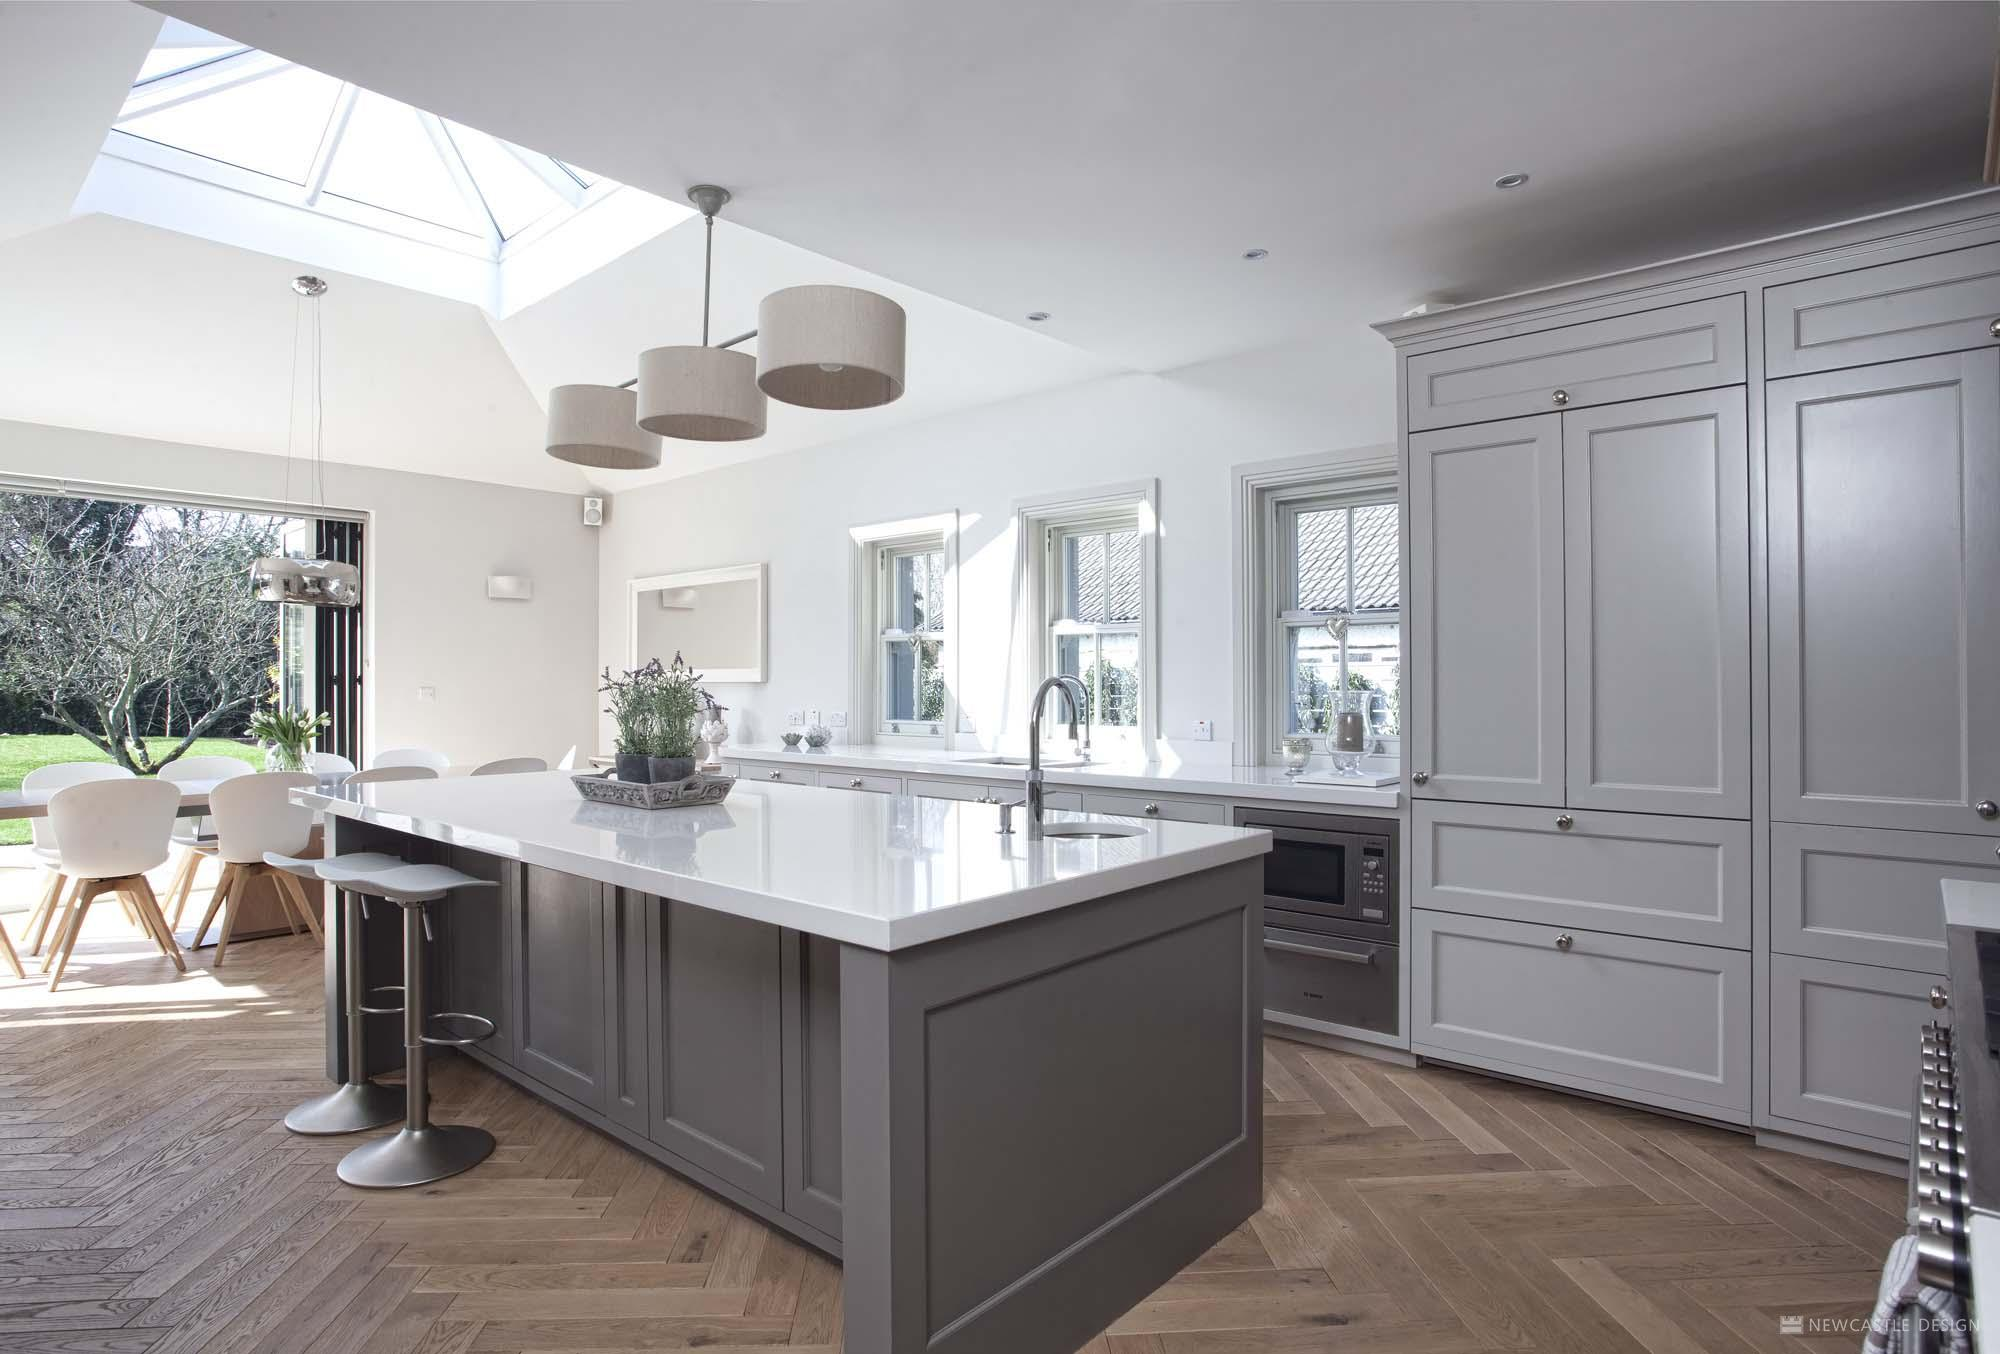 Newcastle design ireland kitchen company dublin for Kitchen designs ireland